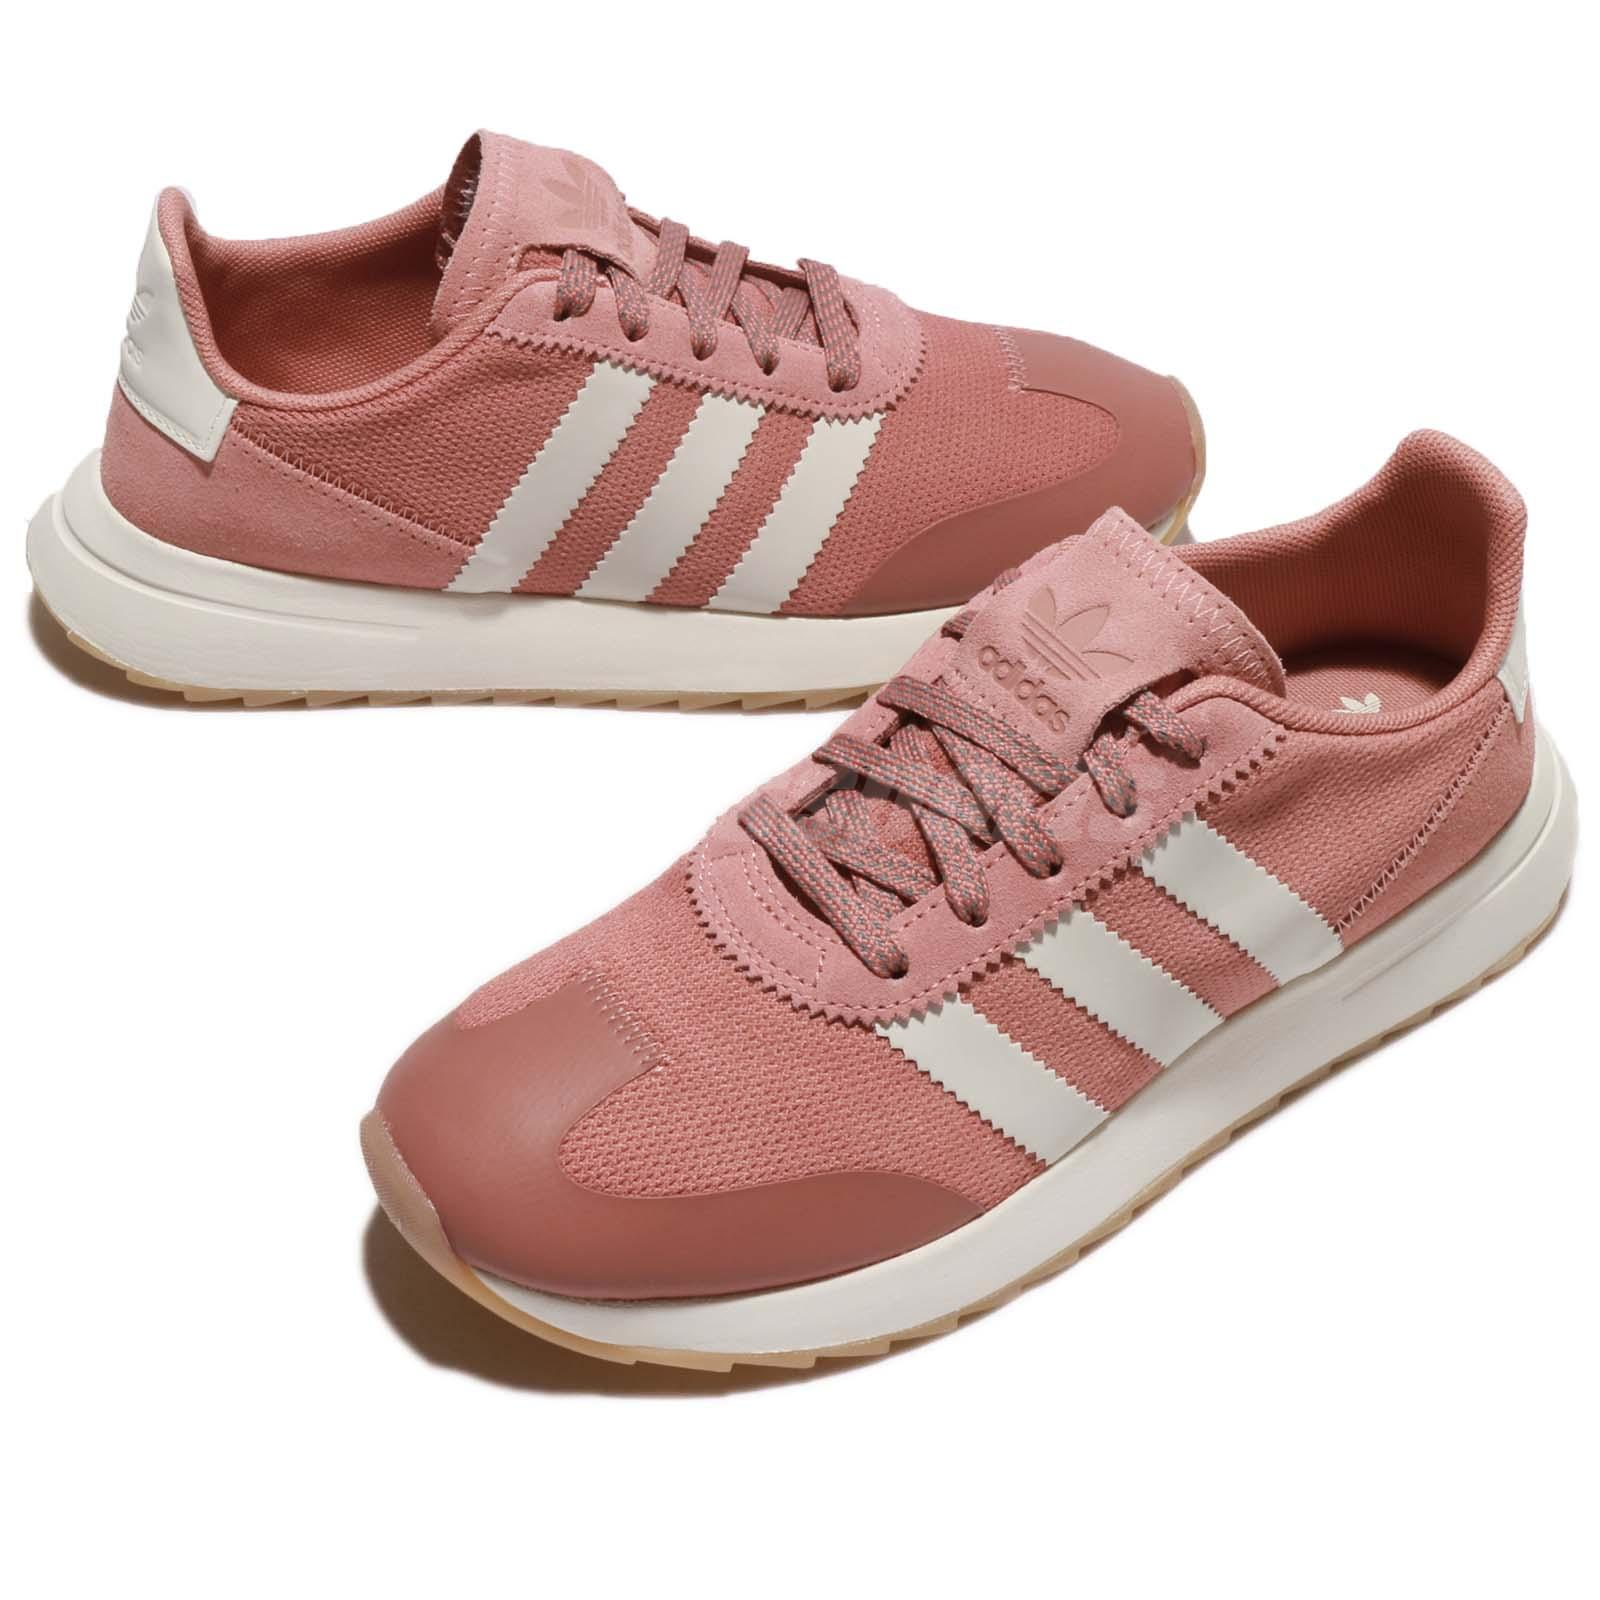 a73c1a5d773078 Details about adidas Originals FLB W Flashback Raw Pink Off White Gum Women  Sneakers BY9301